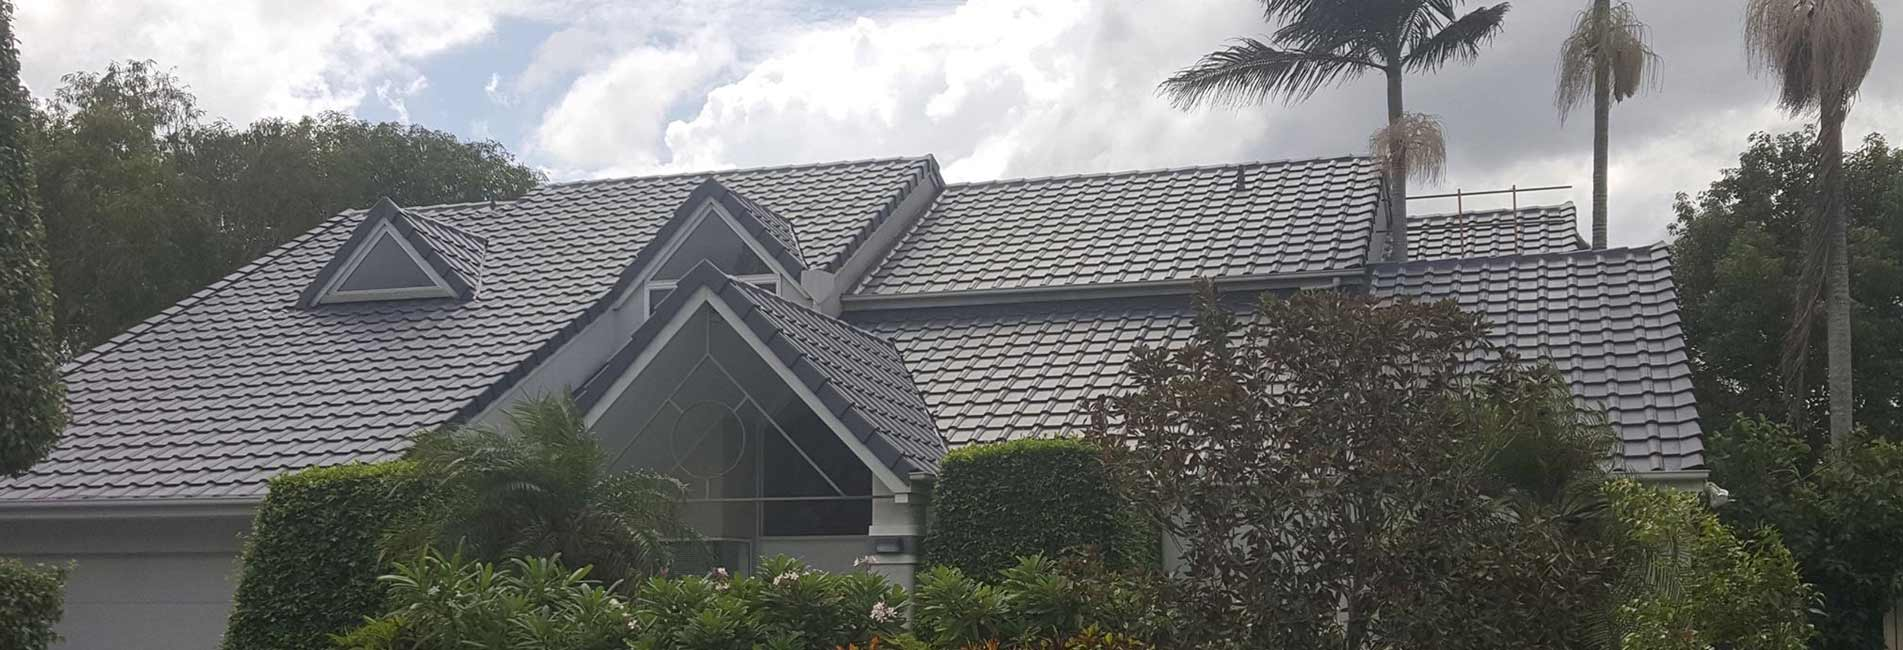 Domestic Roof Tiling Petrie, Roof Painting Morayfield, Roof Replacement Caboolture